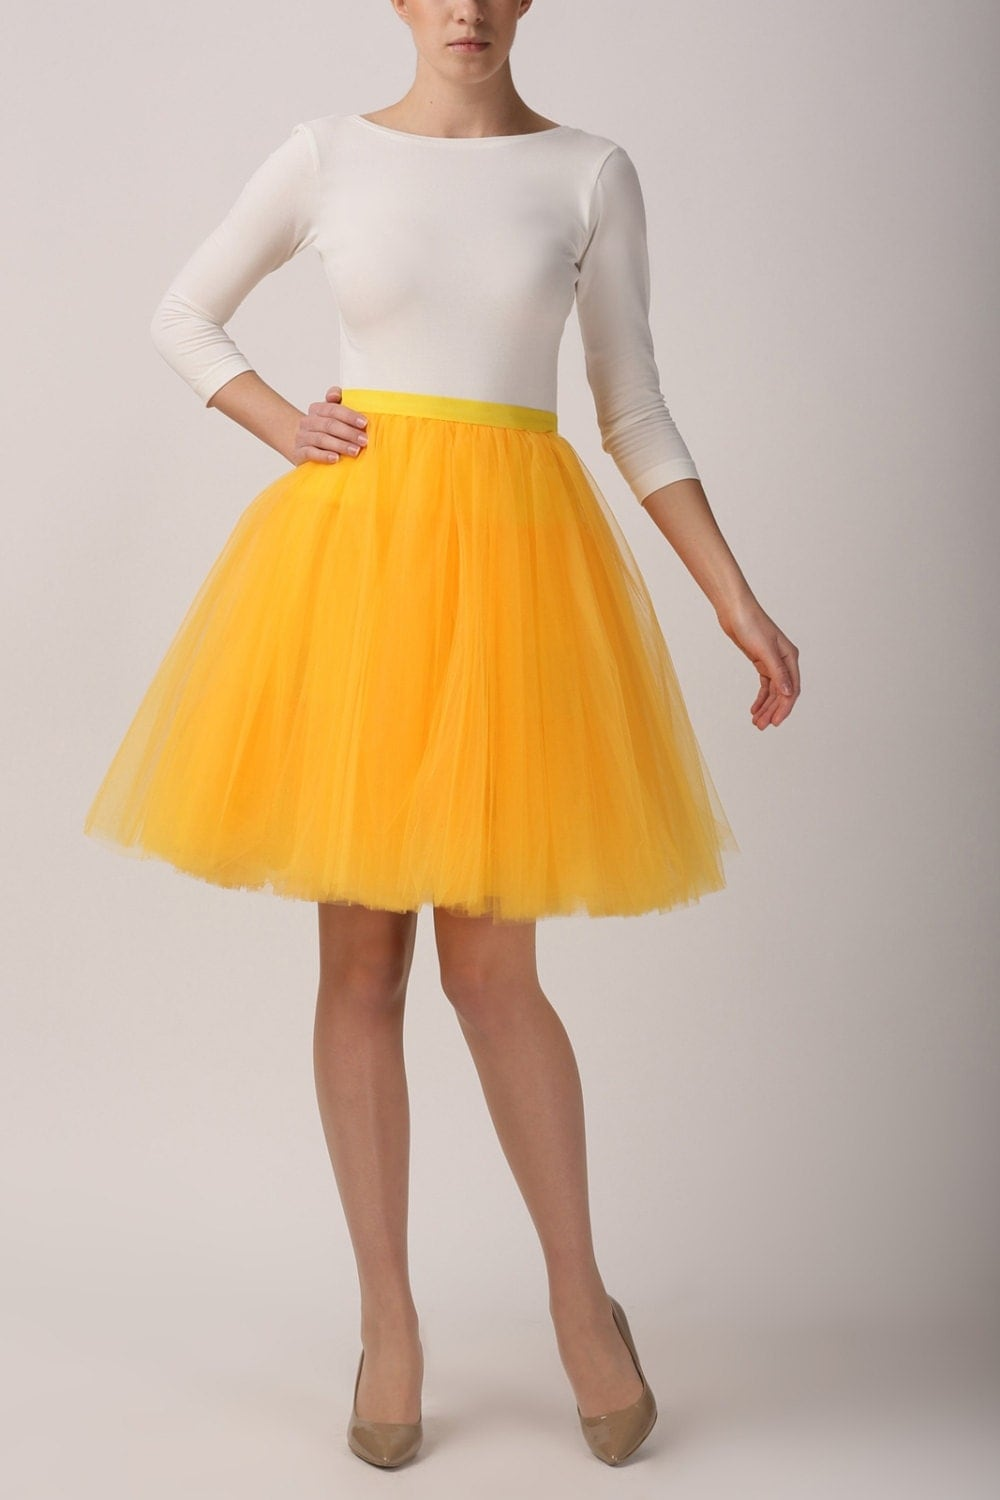 fancy yellow tulle skirt outfit 9